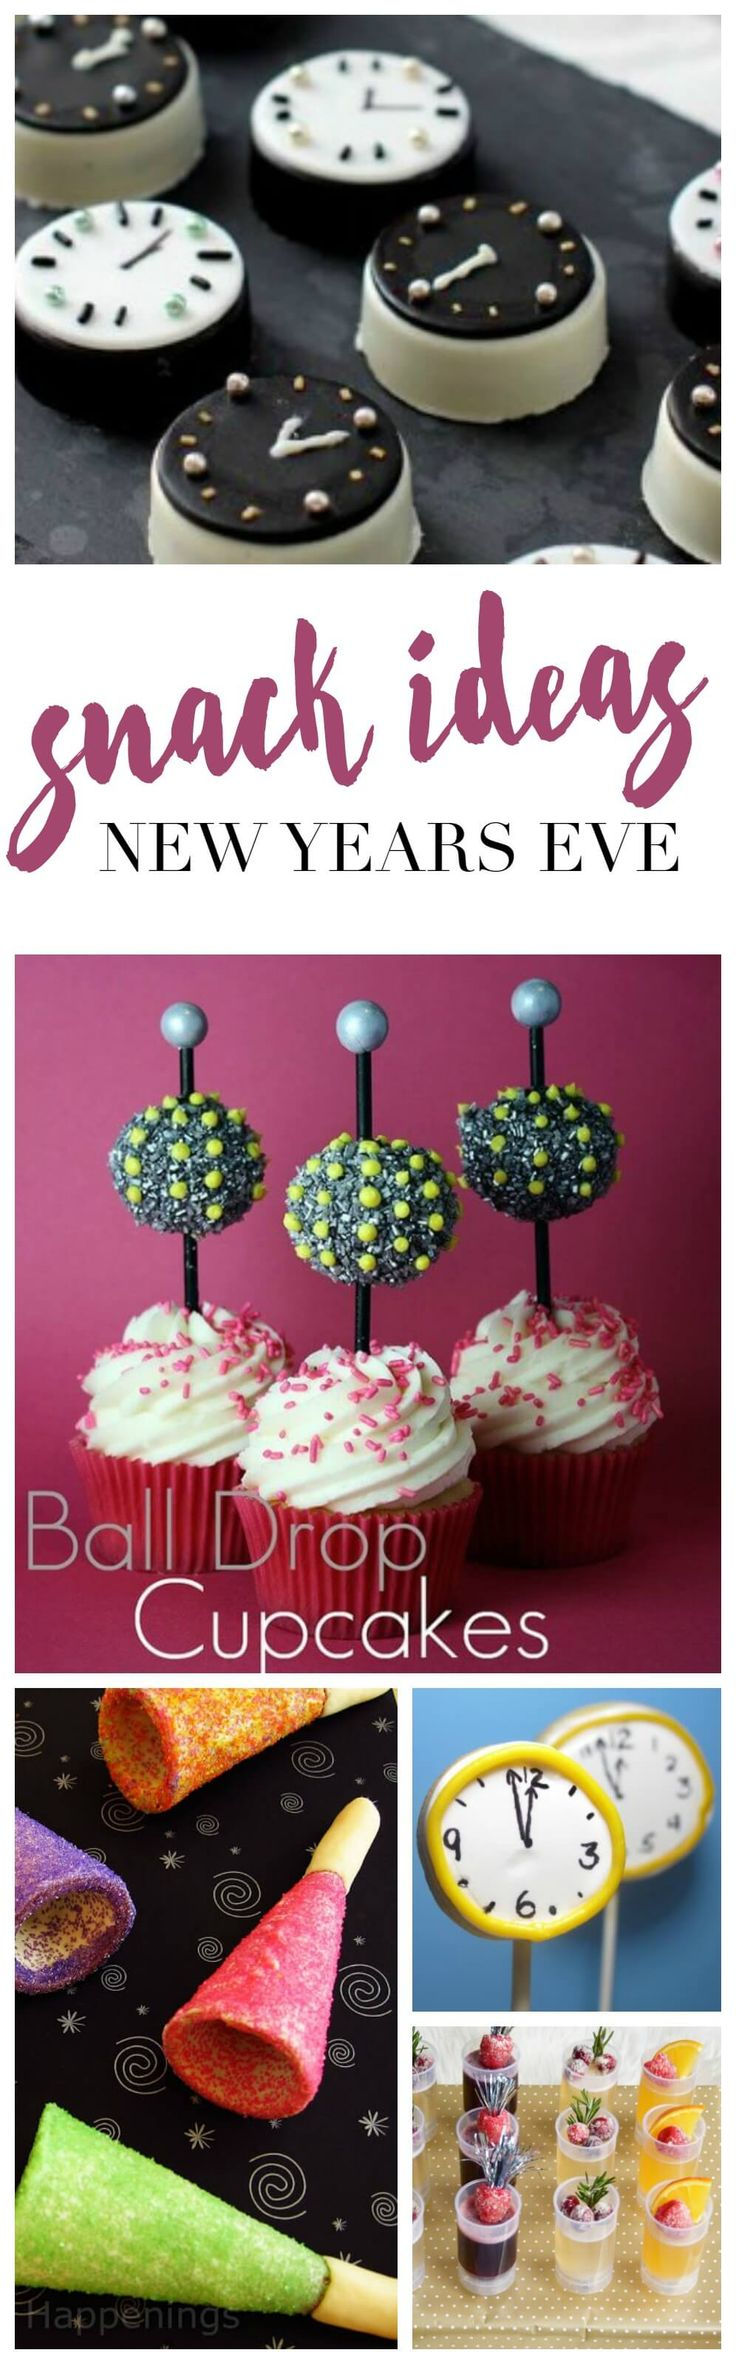 Check out these amazing New Years Eve Snacks and Ideas for your New Years Eve Party this year!